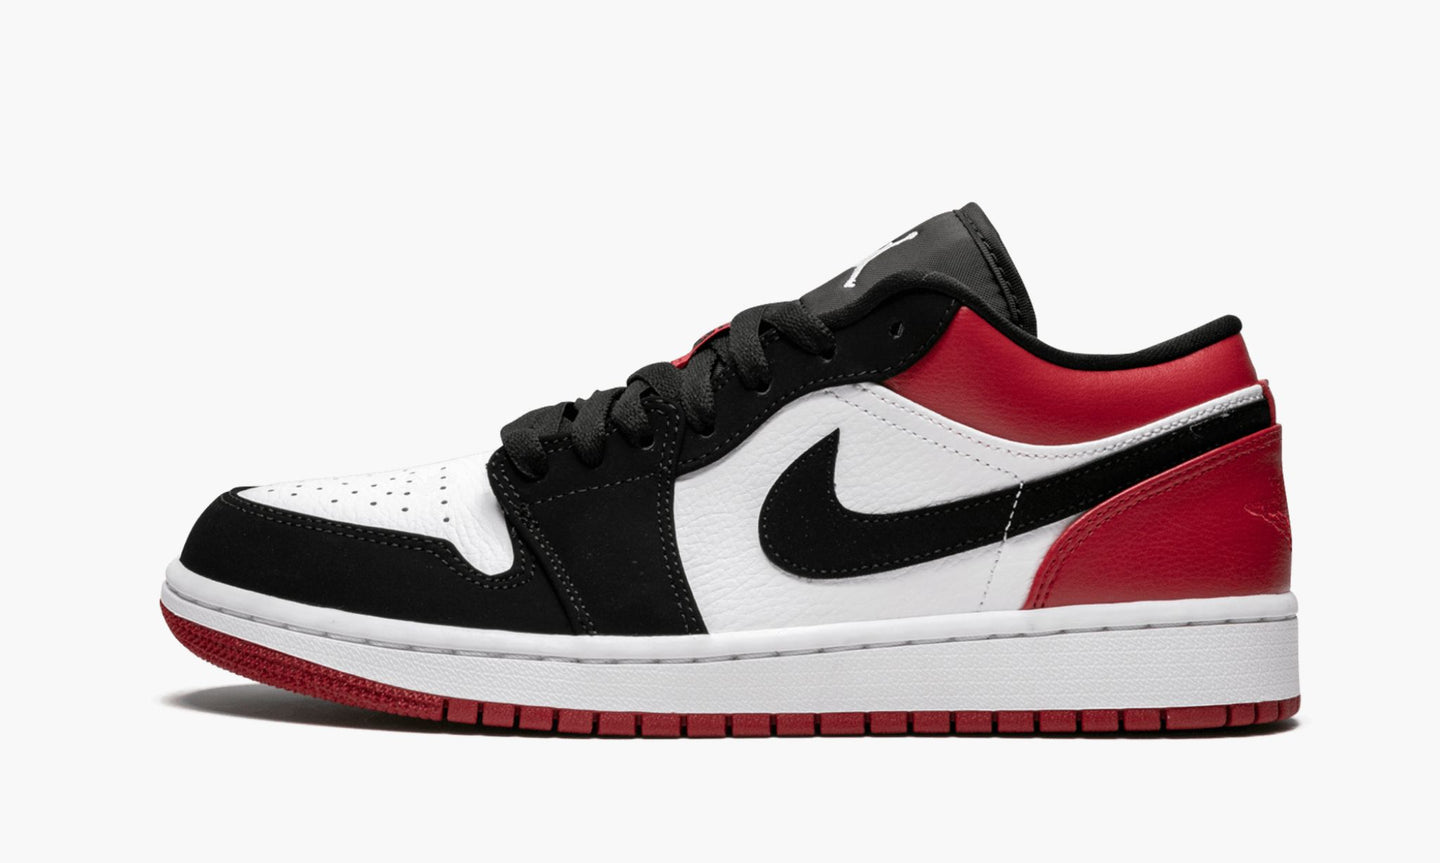 Jordan Air Jordan 1 Low 'Black Toe' - Street Peek